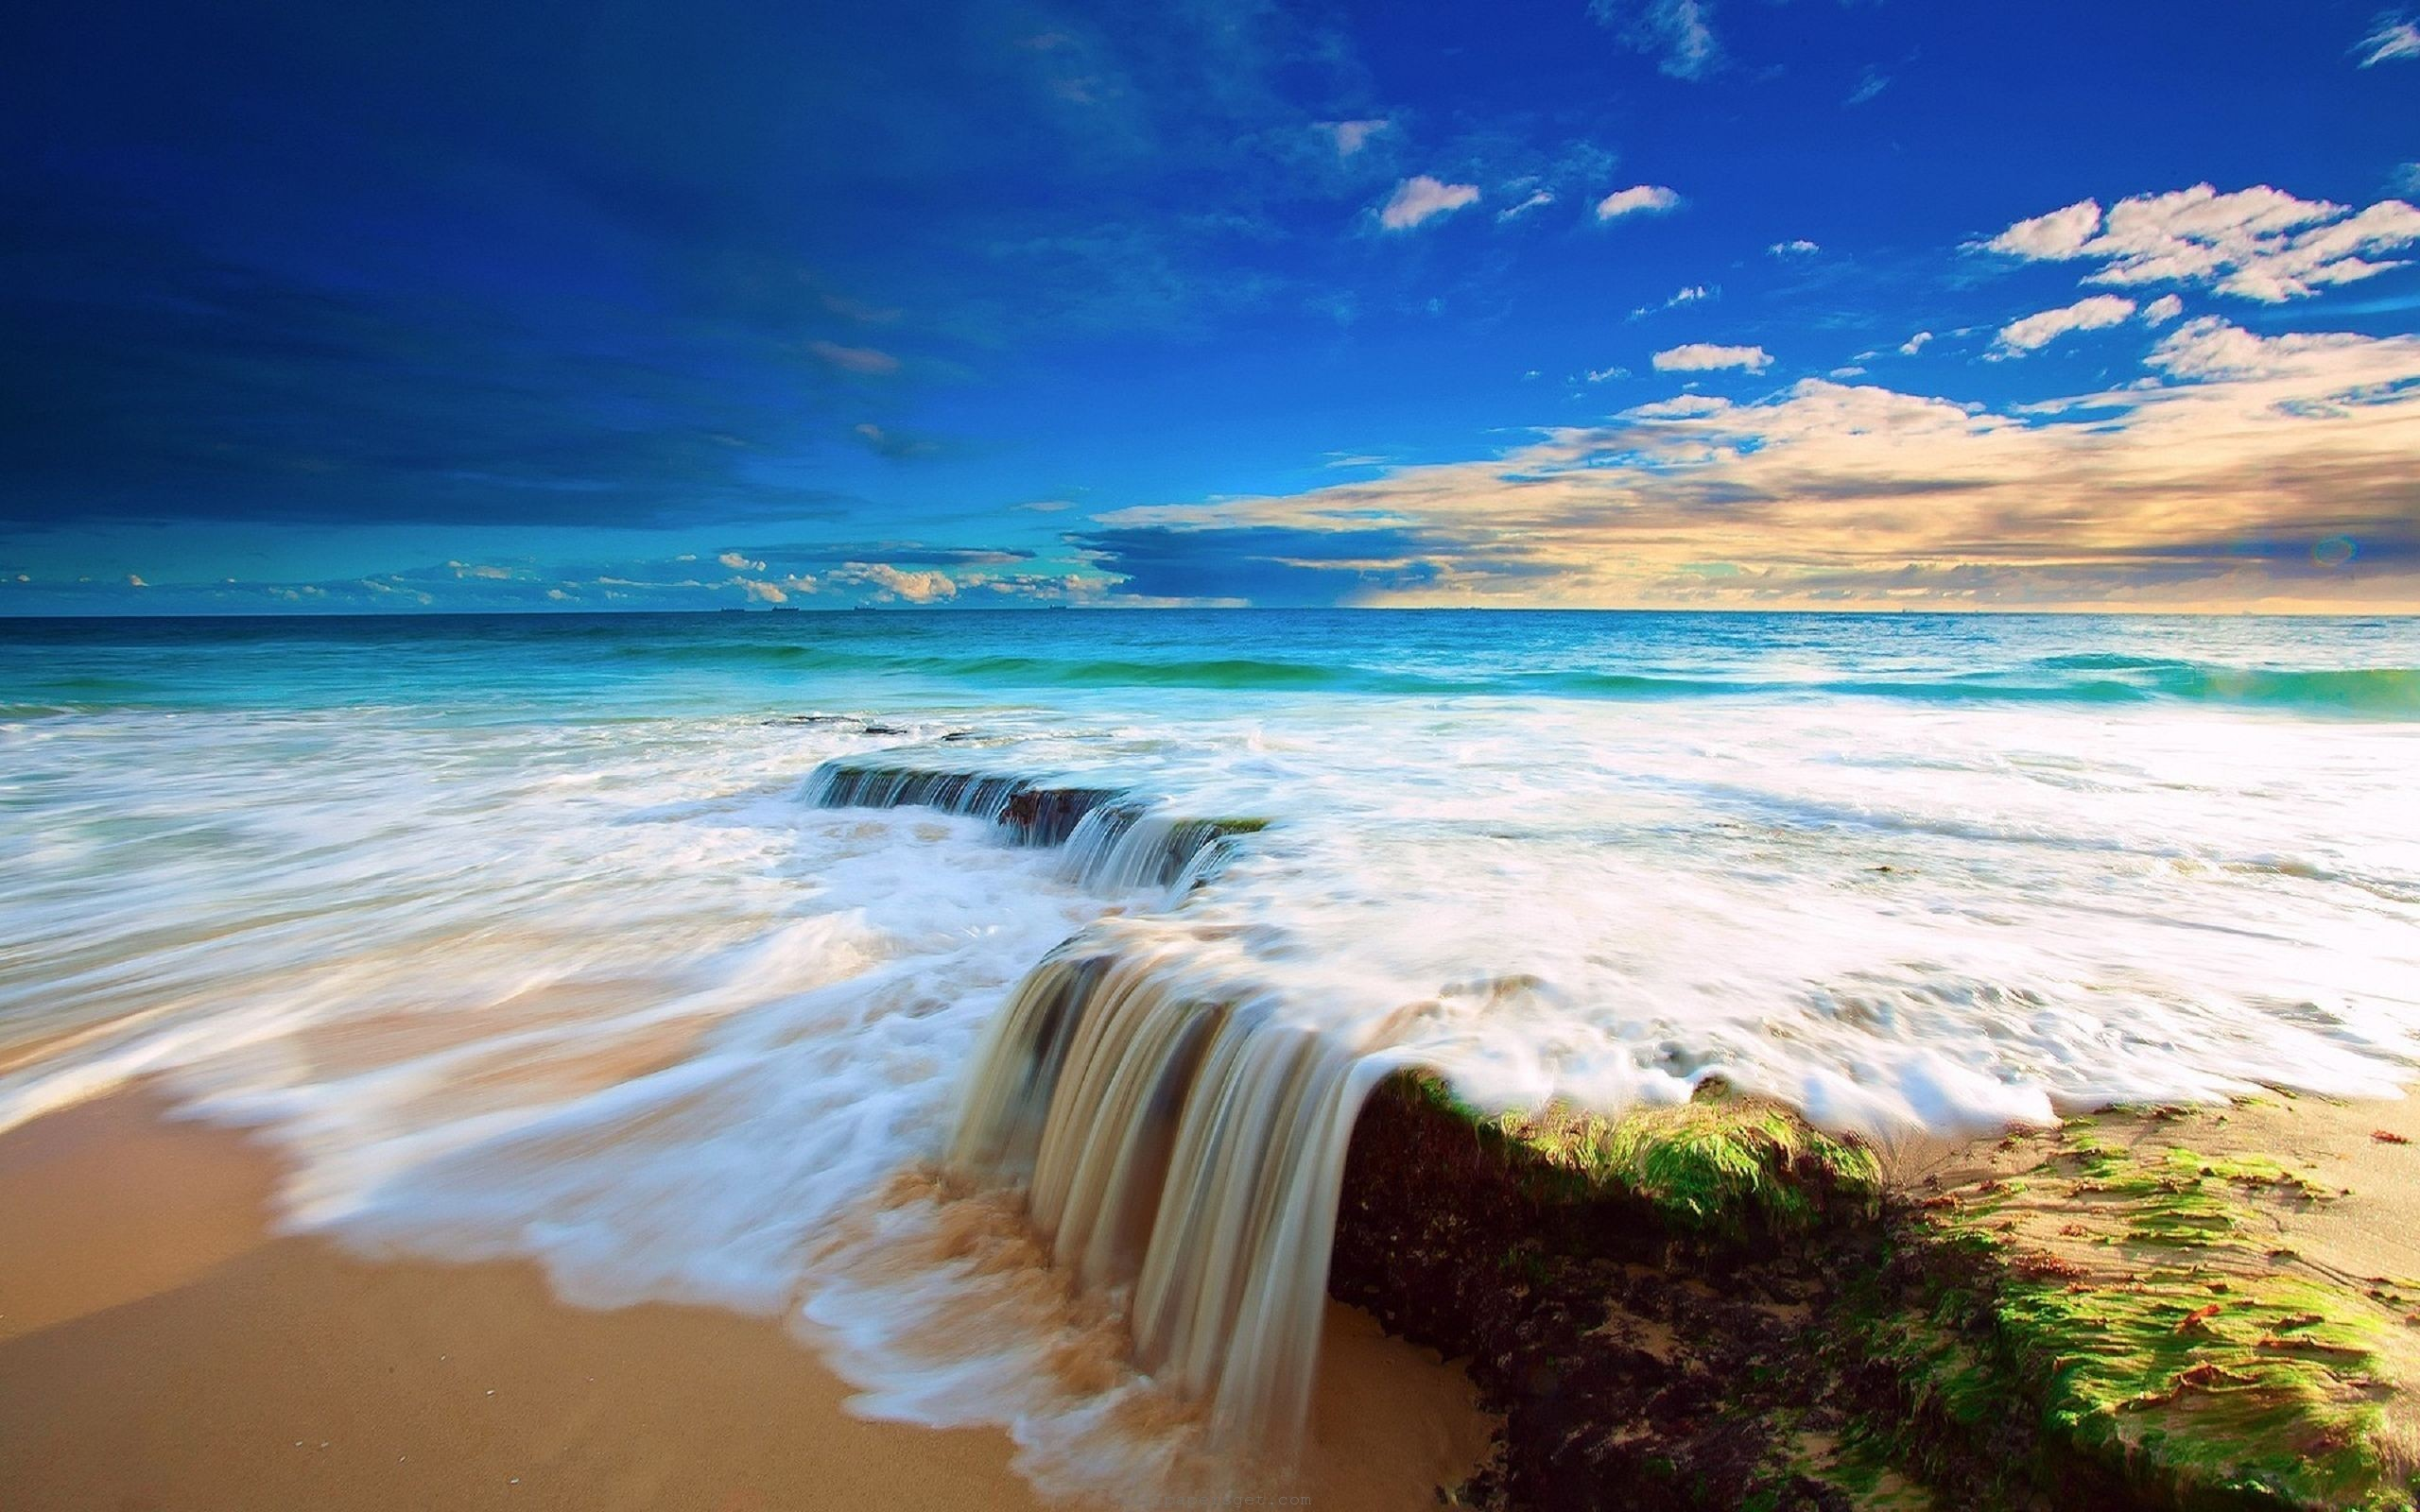 2560x1600 Sea And Beach Wallpapers Landscape Wallpapers, Nature Landscape Wallpaper  For Desktop, Pc, Laptop. Nature Landscape Wallpapers Hd Wallpapers, ...